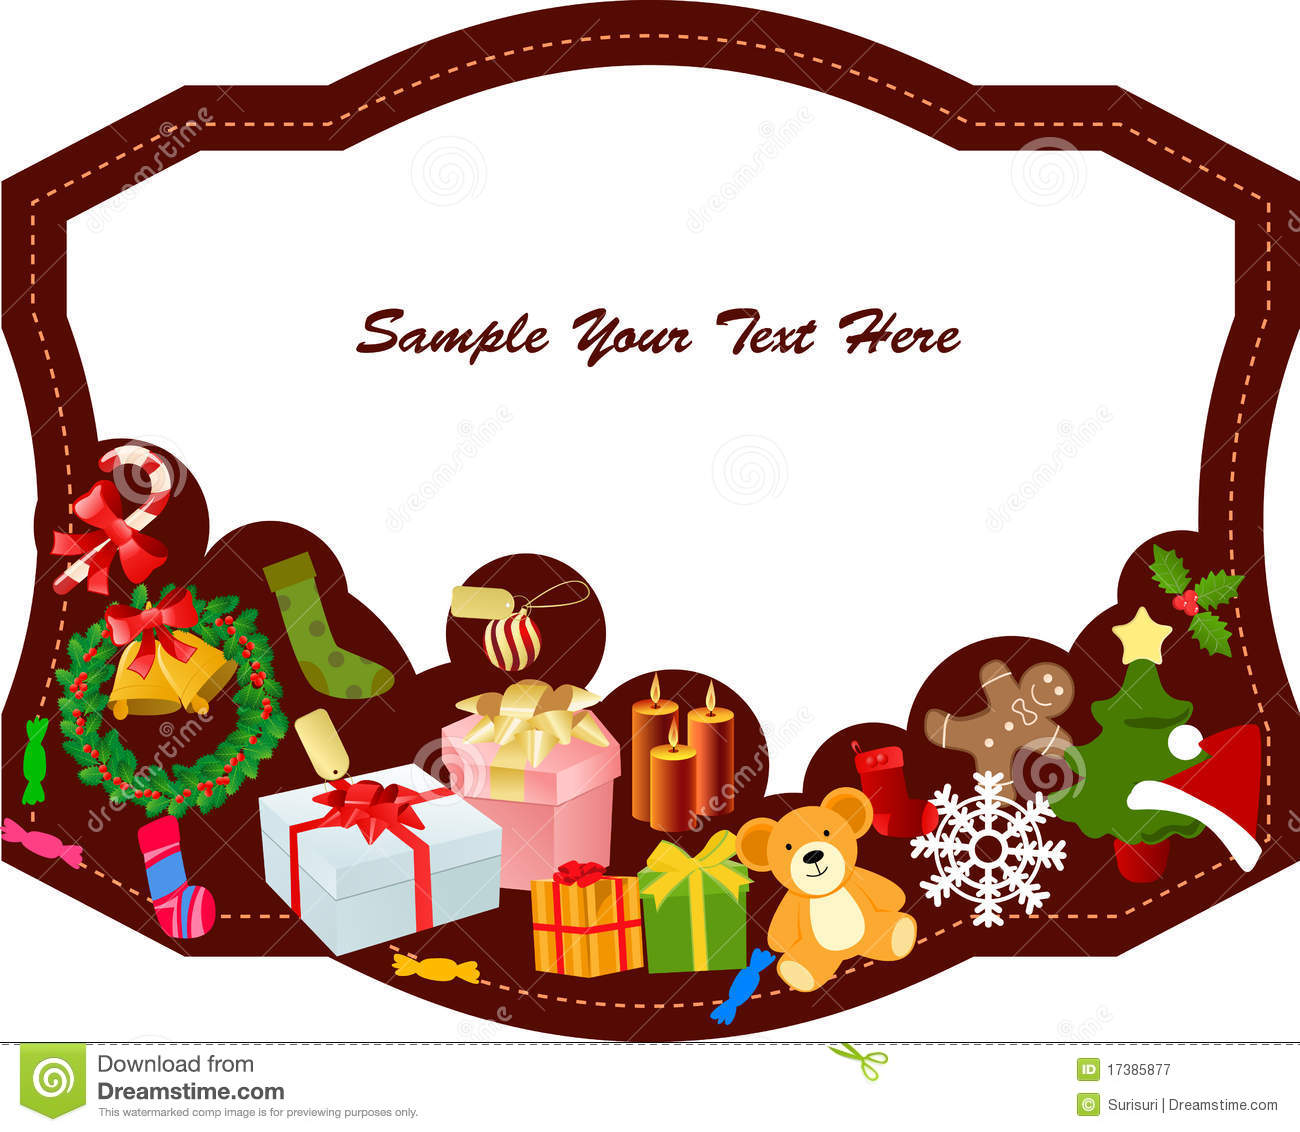 Merry Christmas Frame Royalty Free Stock Photography - Image: 17385877